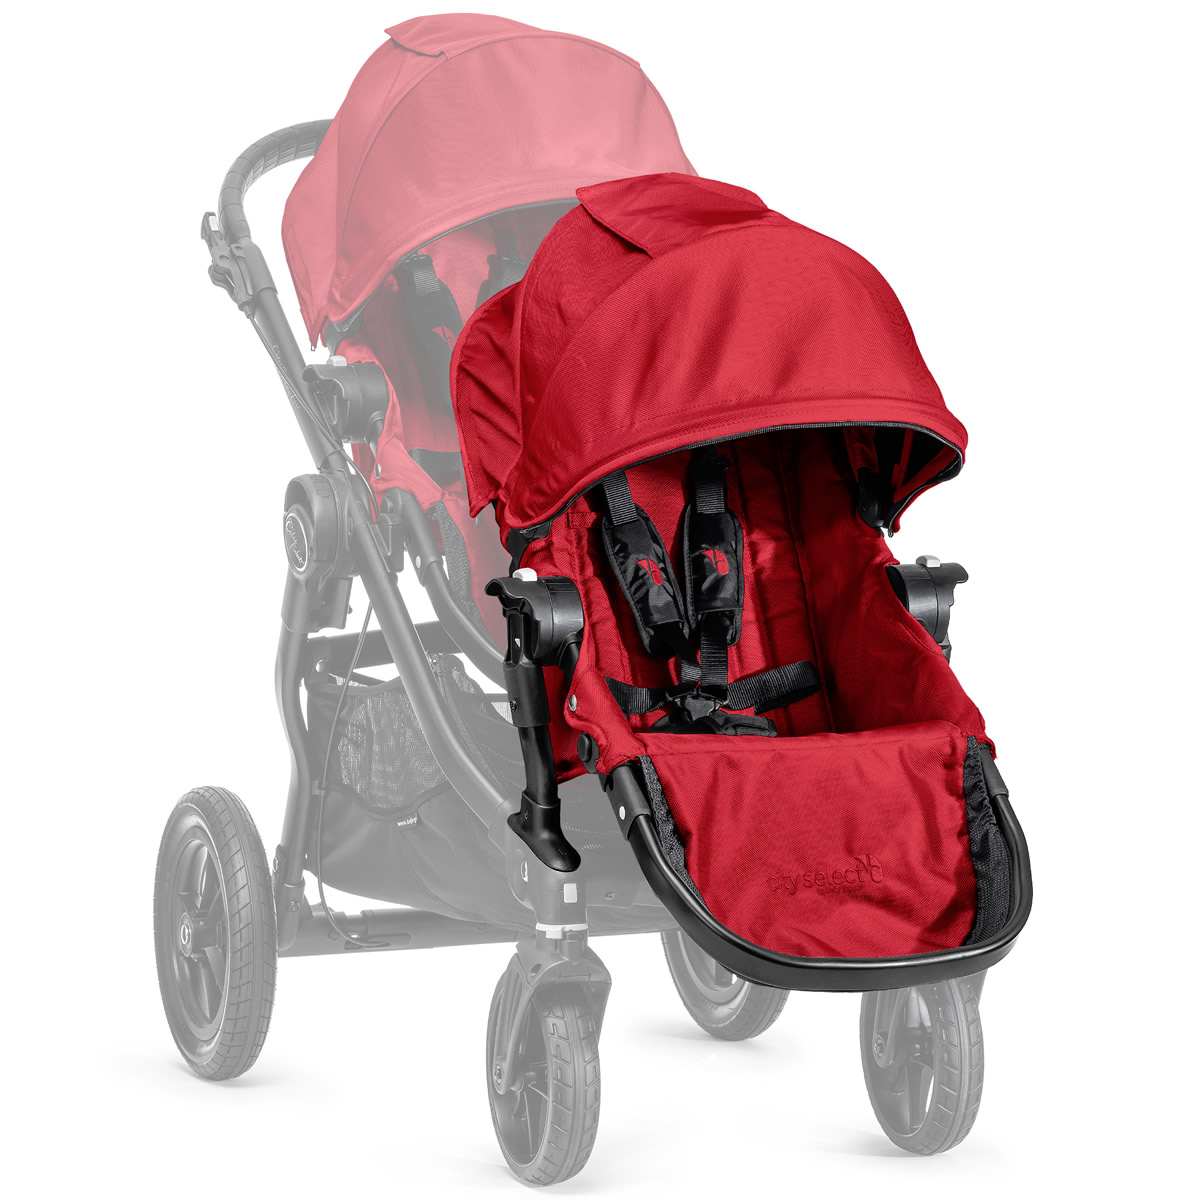 f51096776ce9 Baby Jogger City Select Second Seat Kit - Red